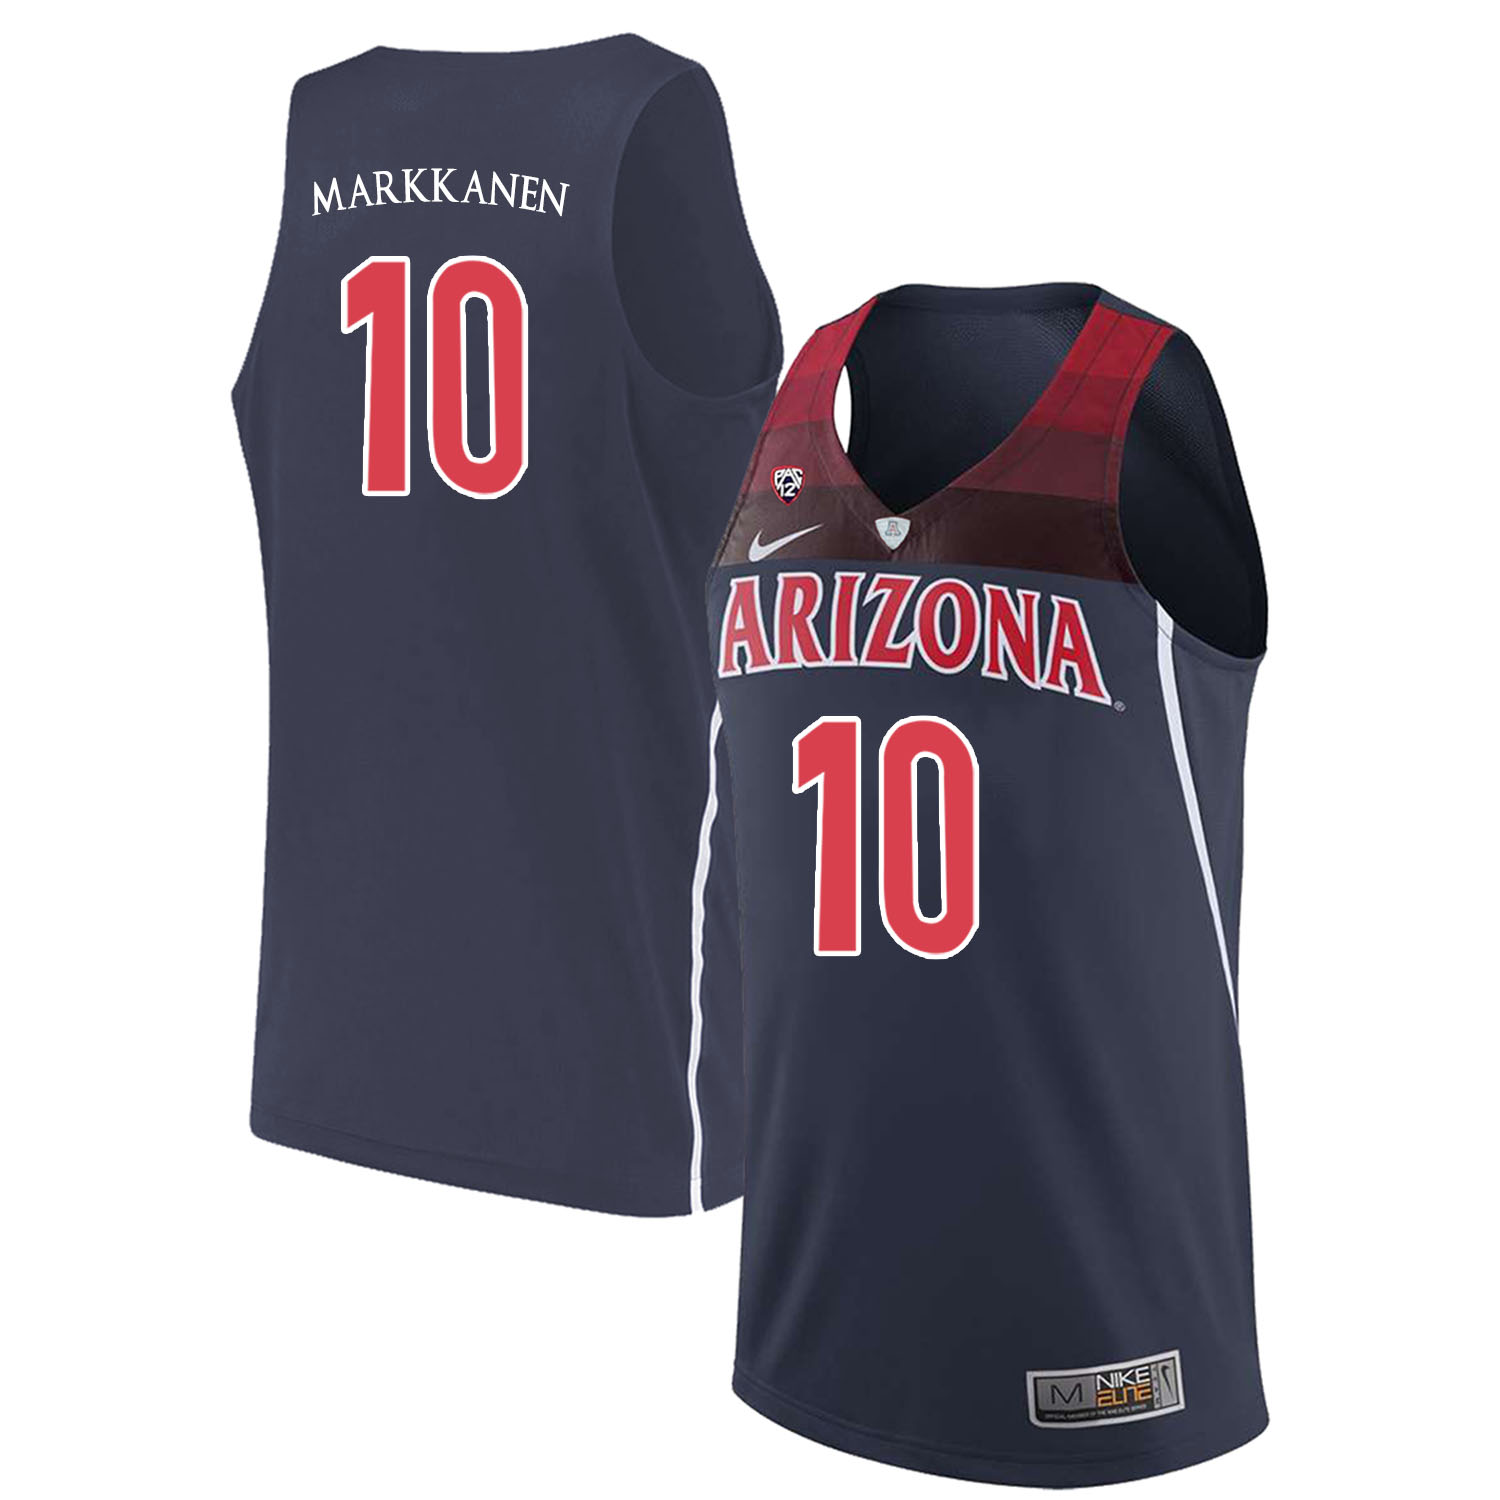 2010 Nba Draft Top Pick - John Wall Or Evan Turner Arizona Wildcats 10 Lauri Markkanen Navy College Basketball Jersey